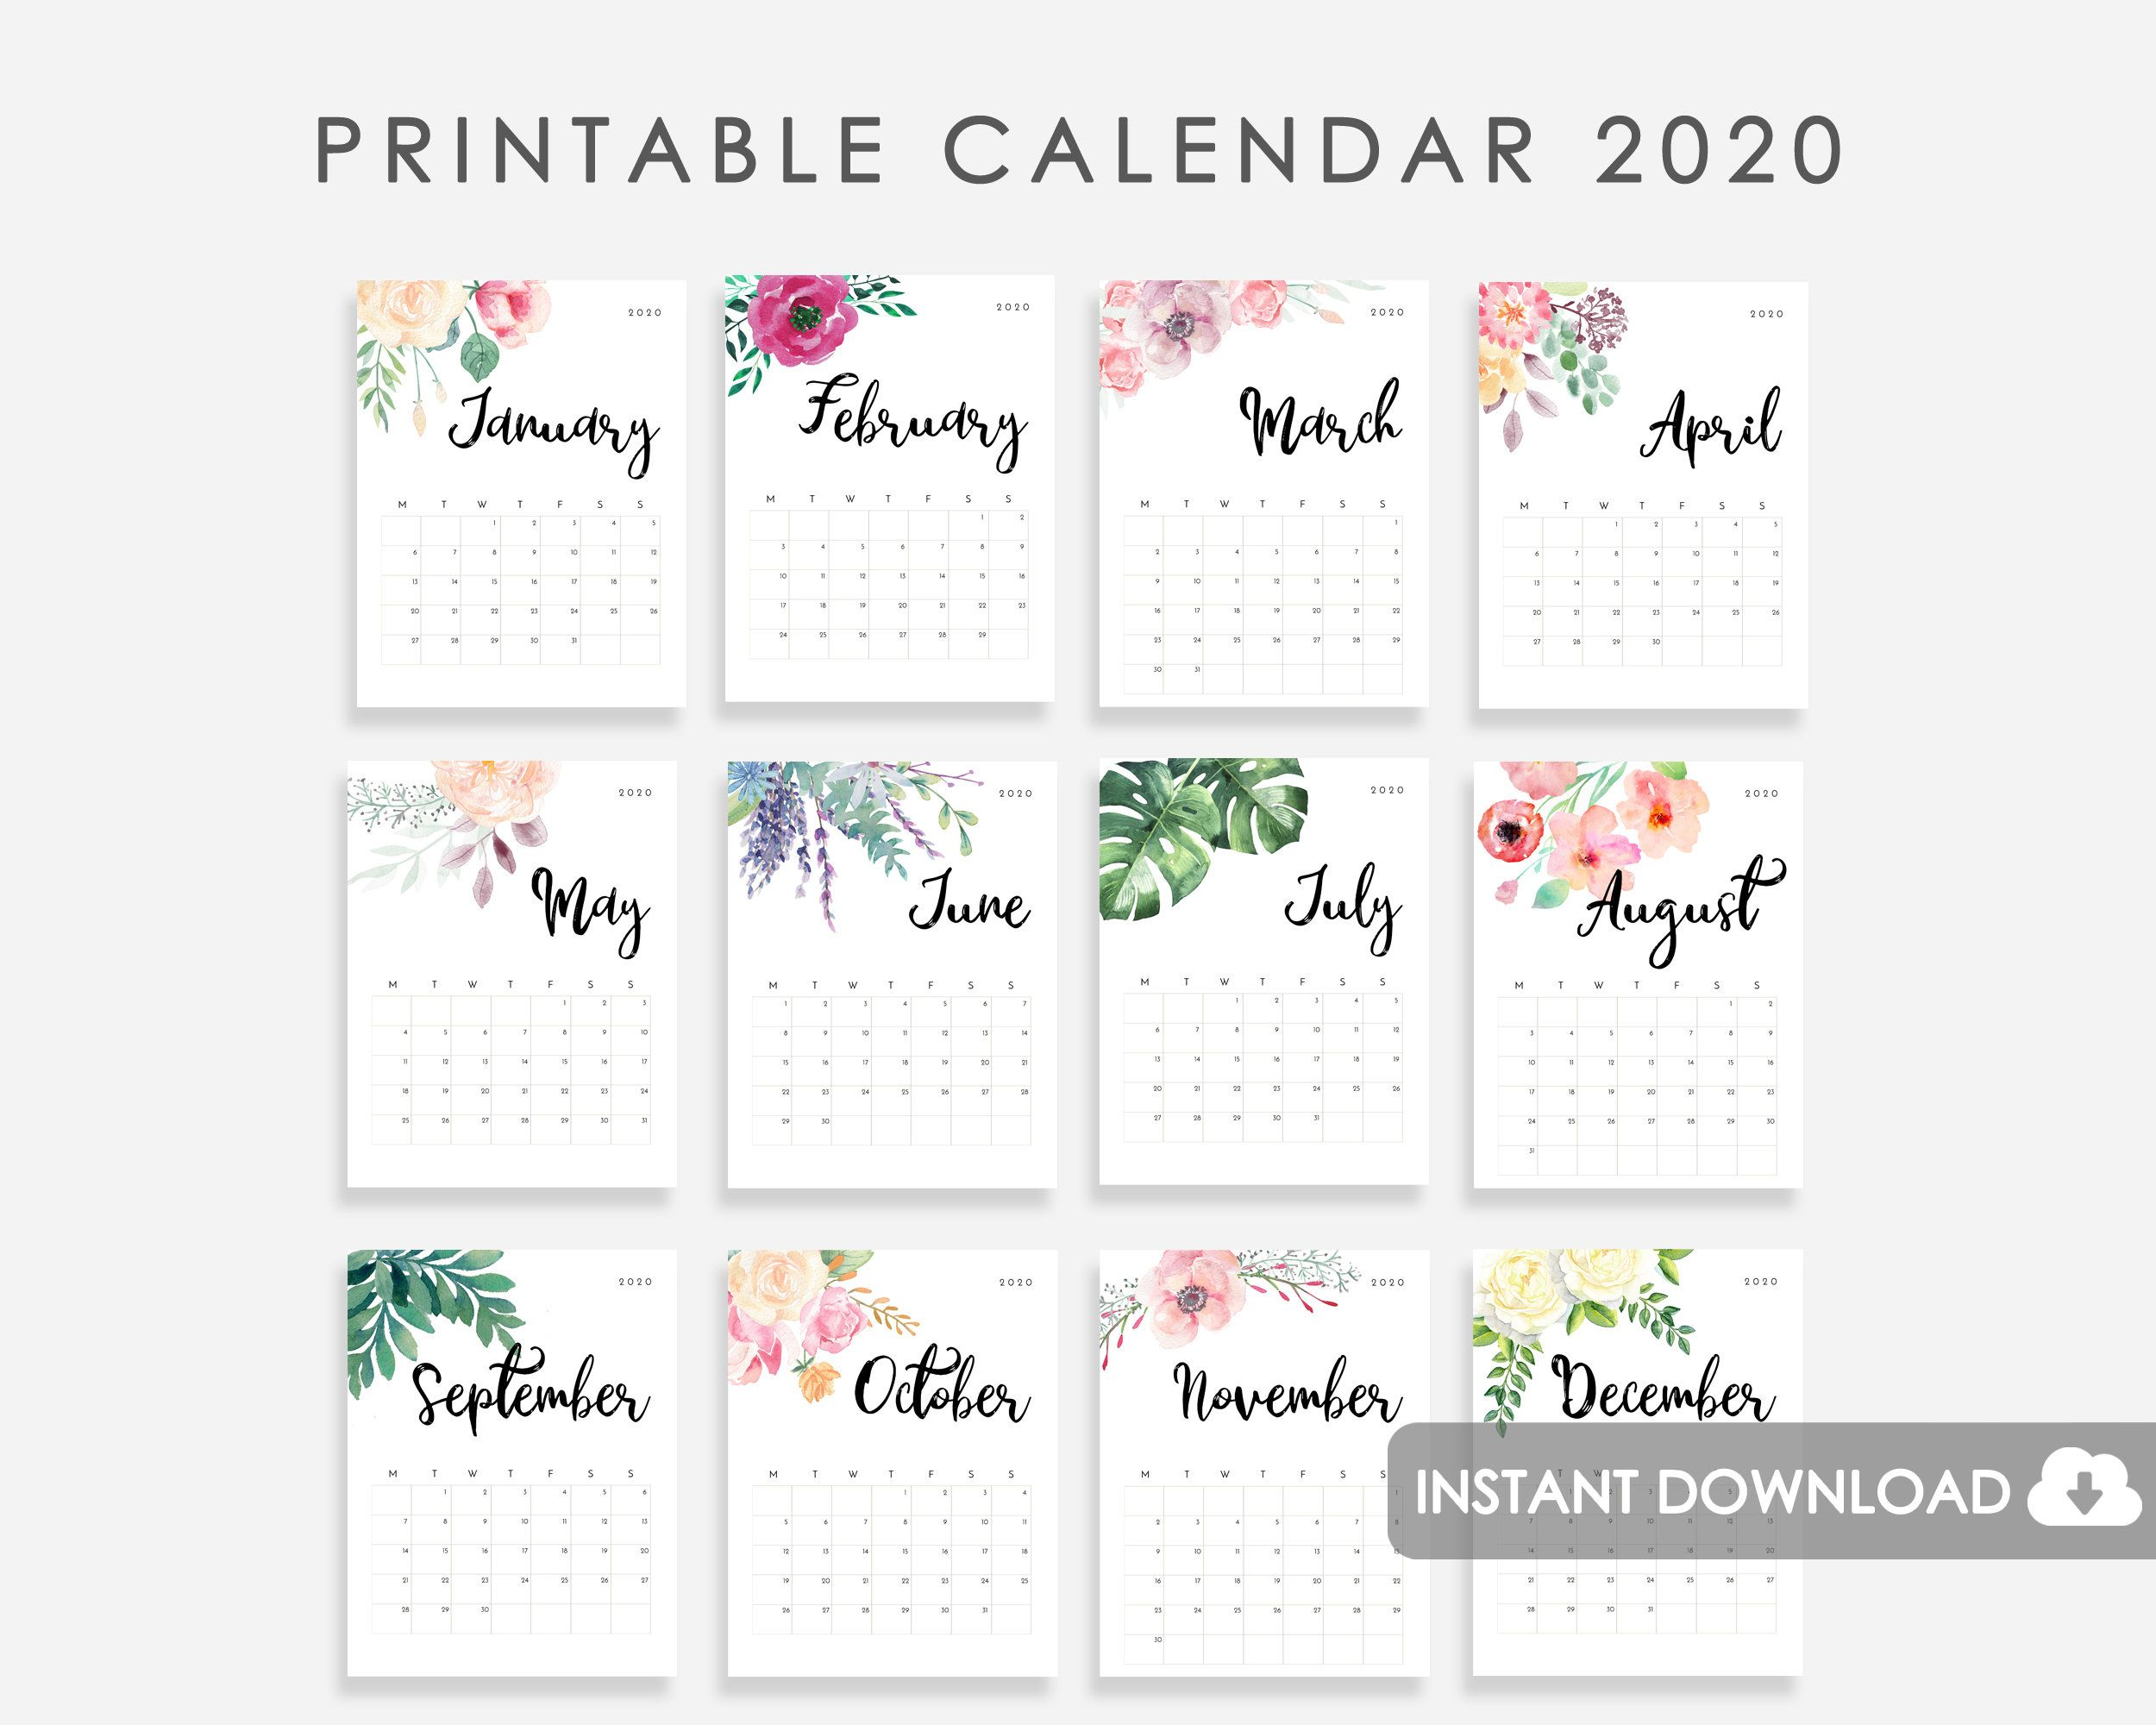 2020 Calendar Printable Desk Calendar 2020 2020 Wall Calendar Watercolor Flowers Calendar 2020 2020 Desk Calendar 2020 Calendarios Imprimibles Calendario Para Imprimir Gratis Ideas De Calendario